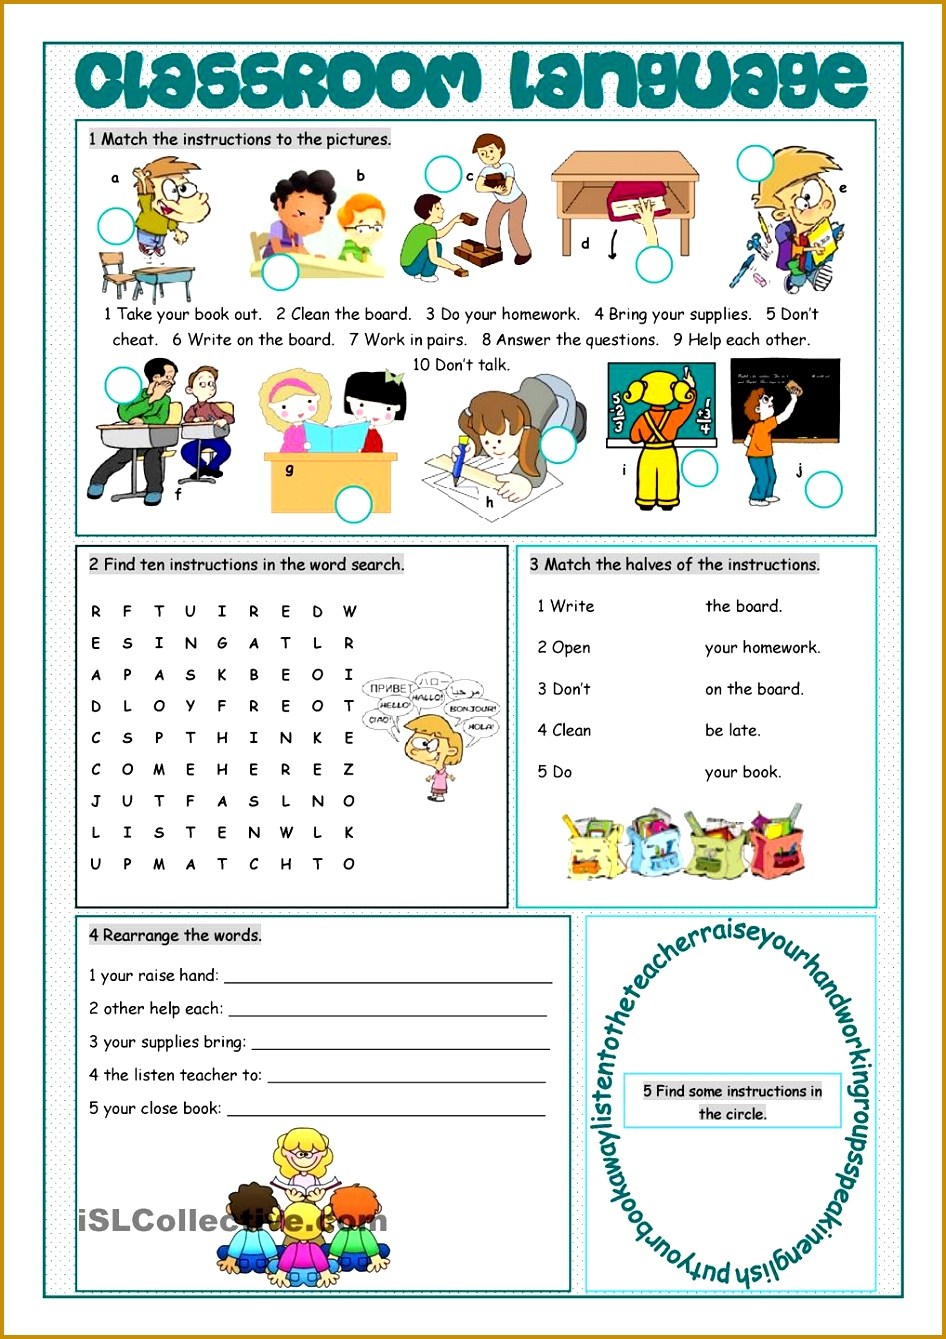 Classroom Language Vocabulary Exercises worksheet Free ESL printable worksheets made by teachers 9461339